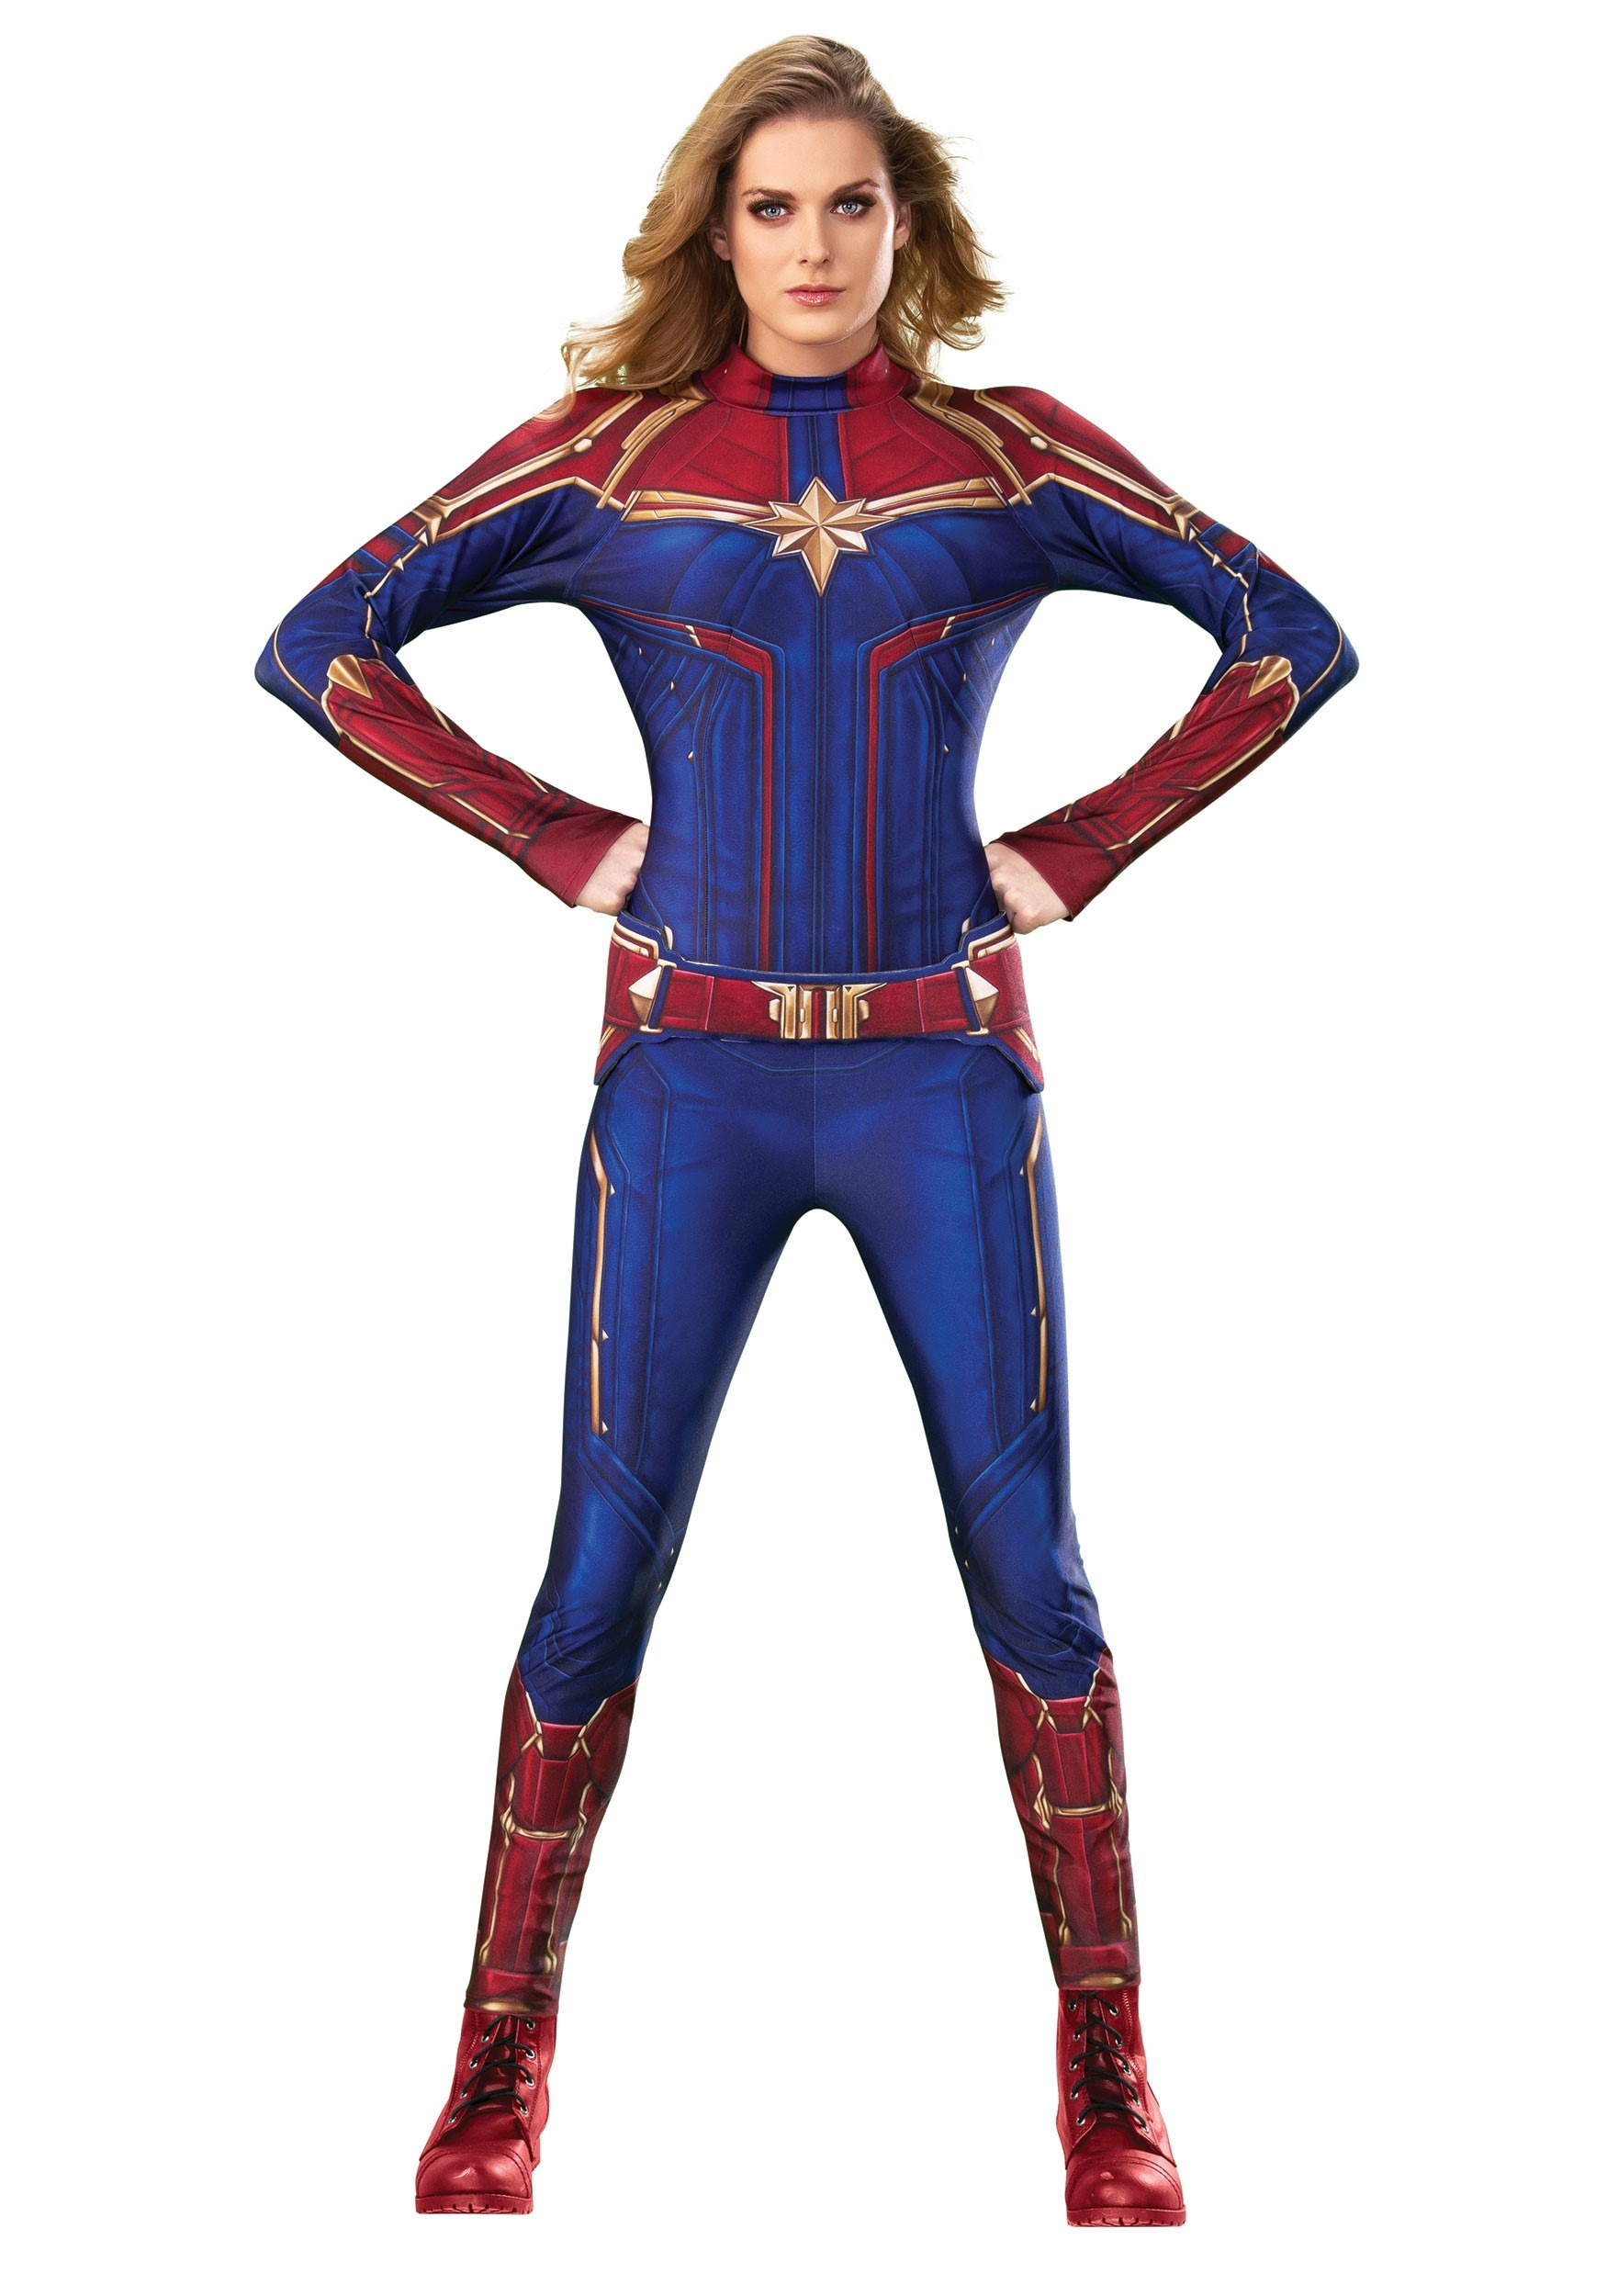 Captain Marvel Deluxe Women S Costume A wide variety of captain marvel costume options are available to you, such as supply type, costumes type, and holiday. deluxe captain marvel women s costume